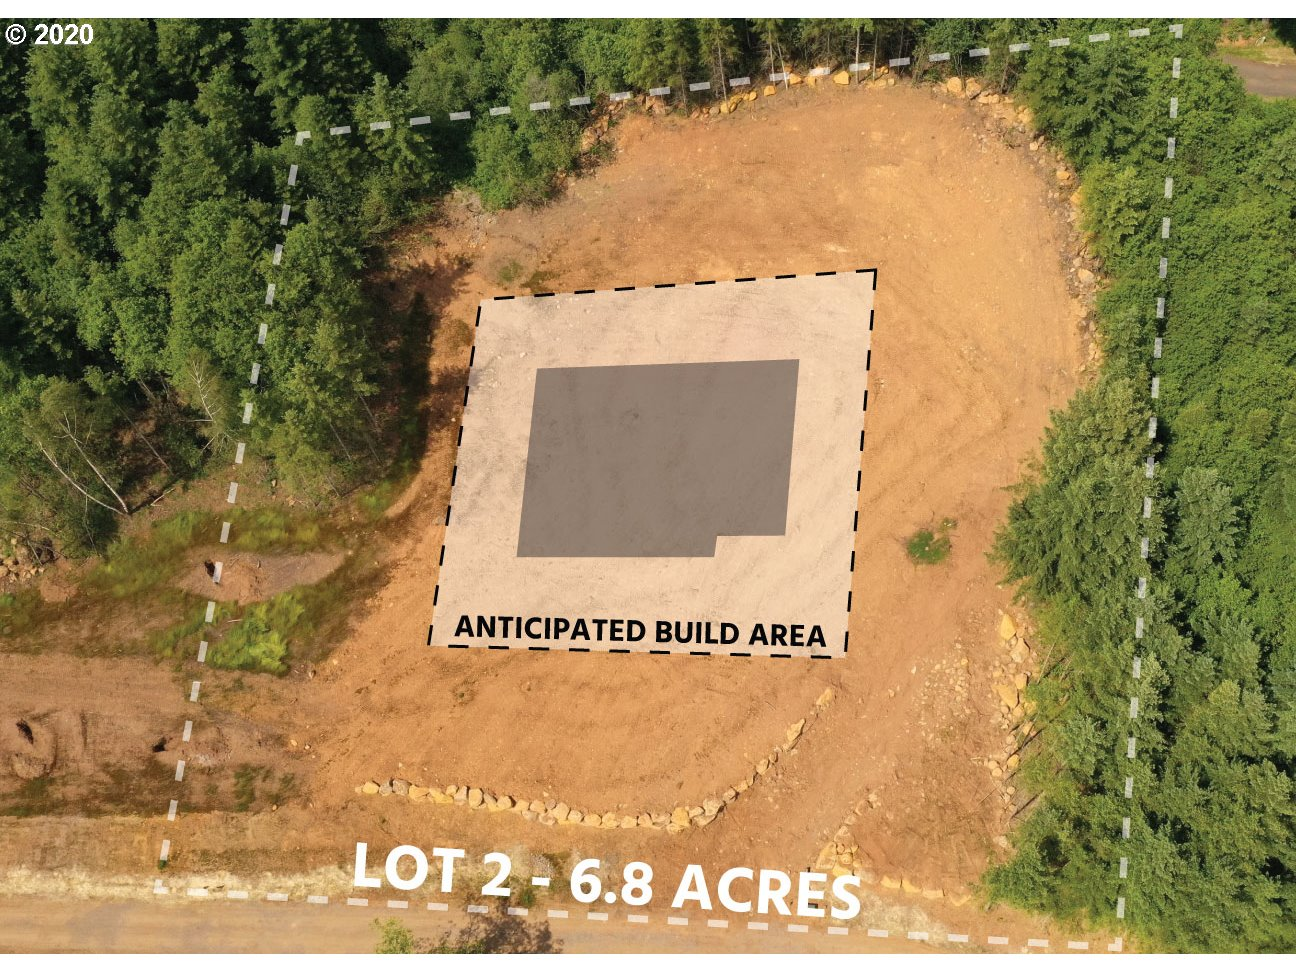 Photo of 0 NE 292nd AVE Lot 2